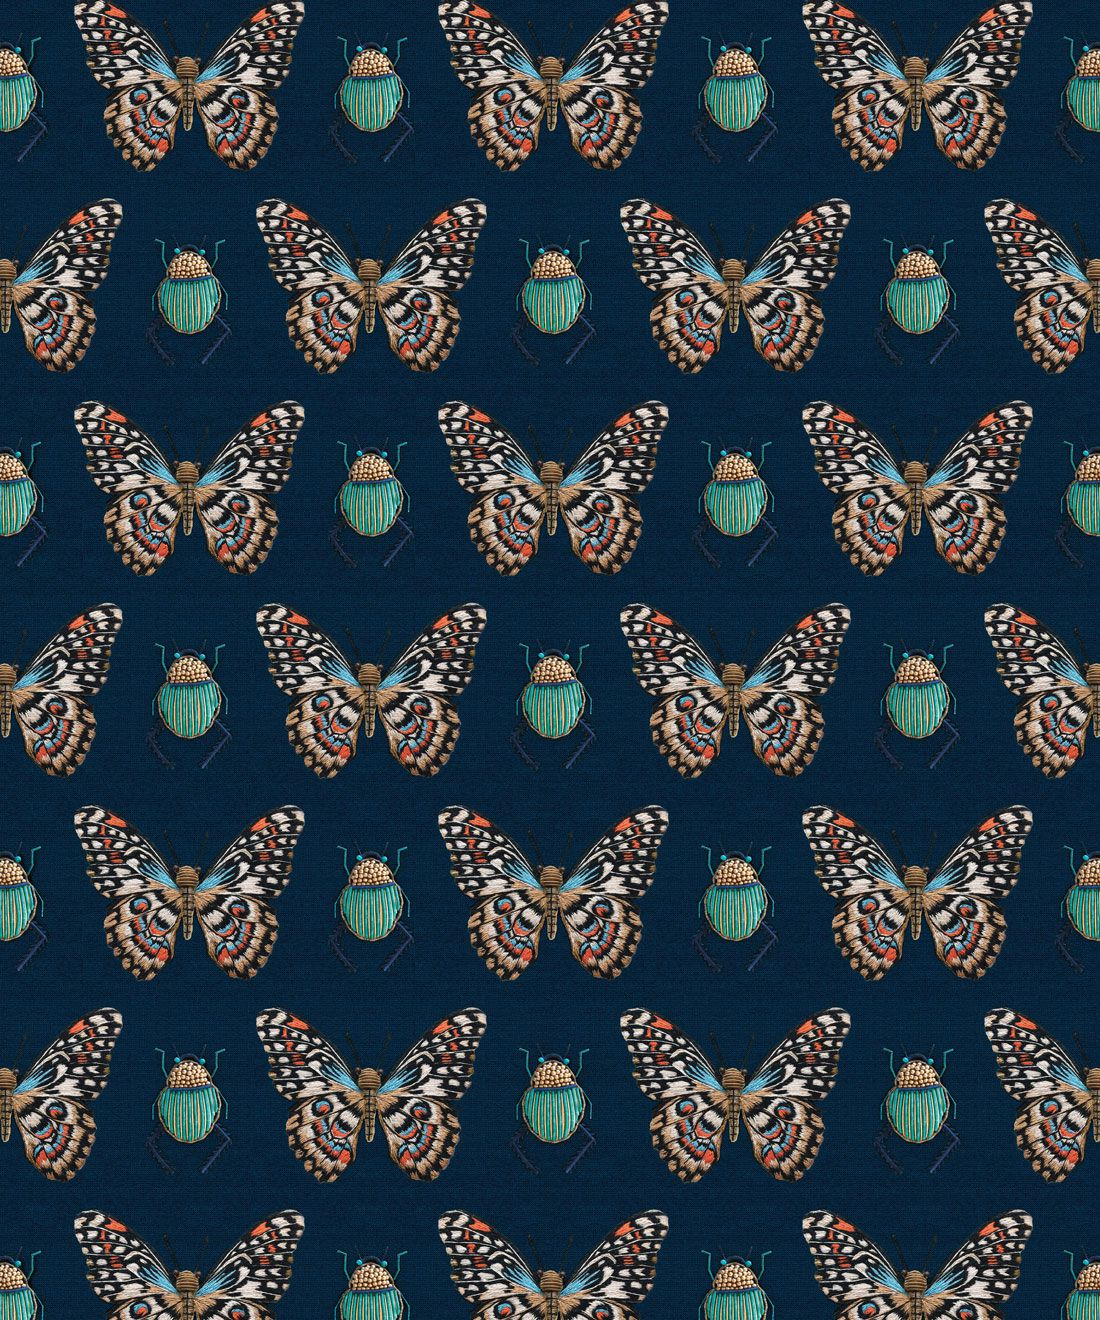 Beetle & Butterfly Wallpaper